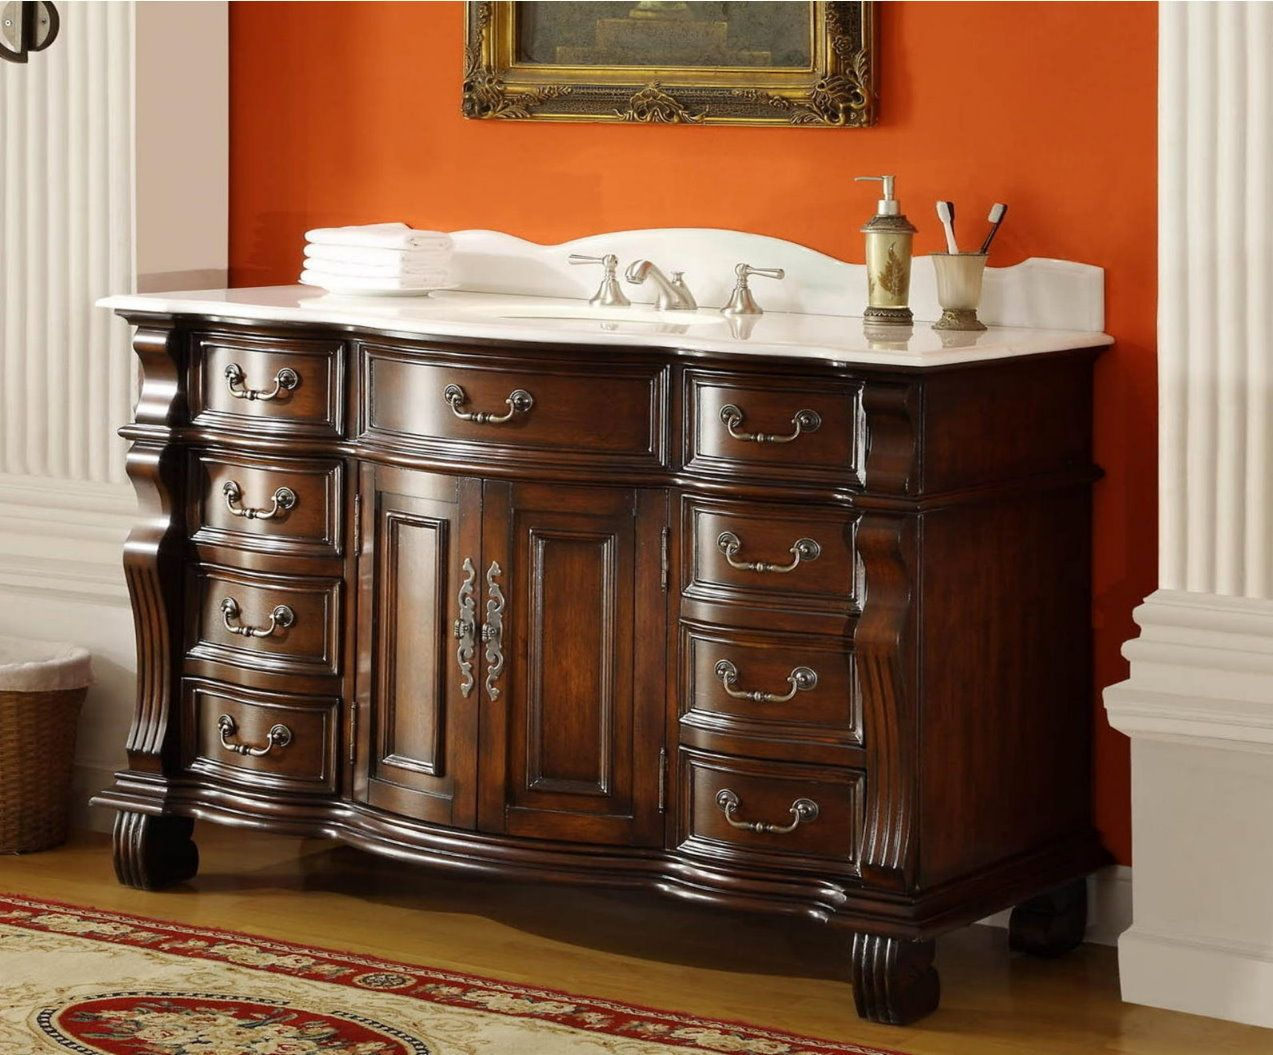 Old World Hopkinton Bathroom Sink Vanity Cabinet — Dimensions: 60 x 22 x  approx. This single sink vanity will be the keystone of your master bath. - A New Edition To A Classic Style Bathroom, The Beautiful Adelina